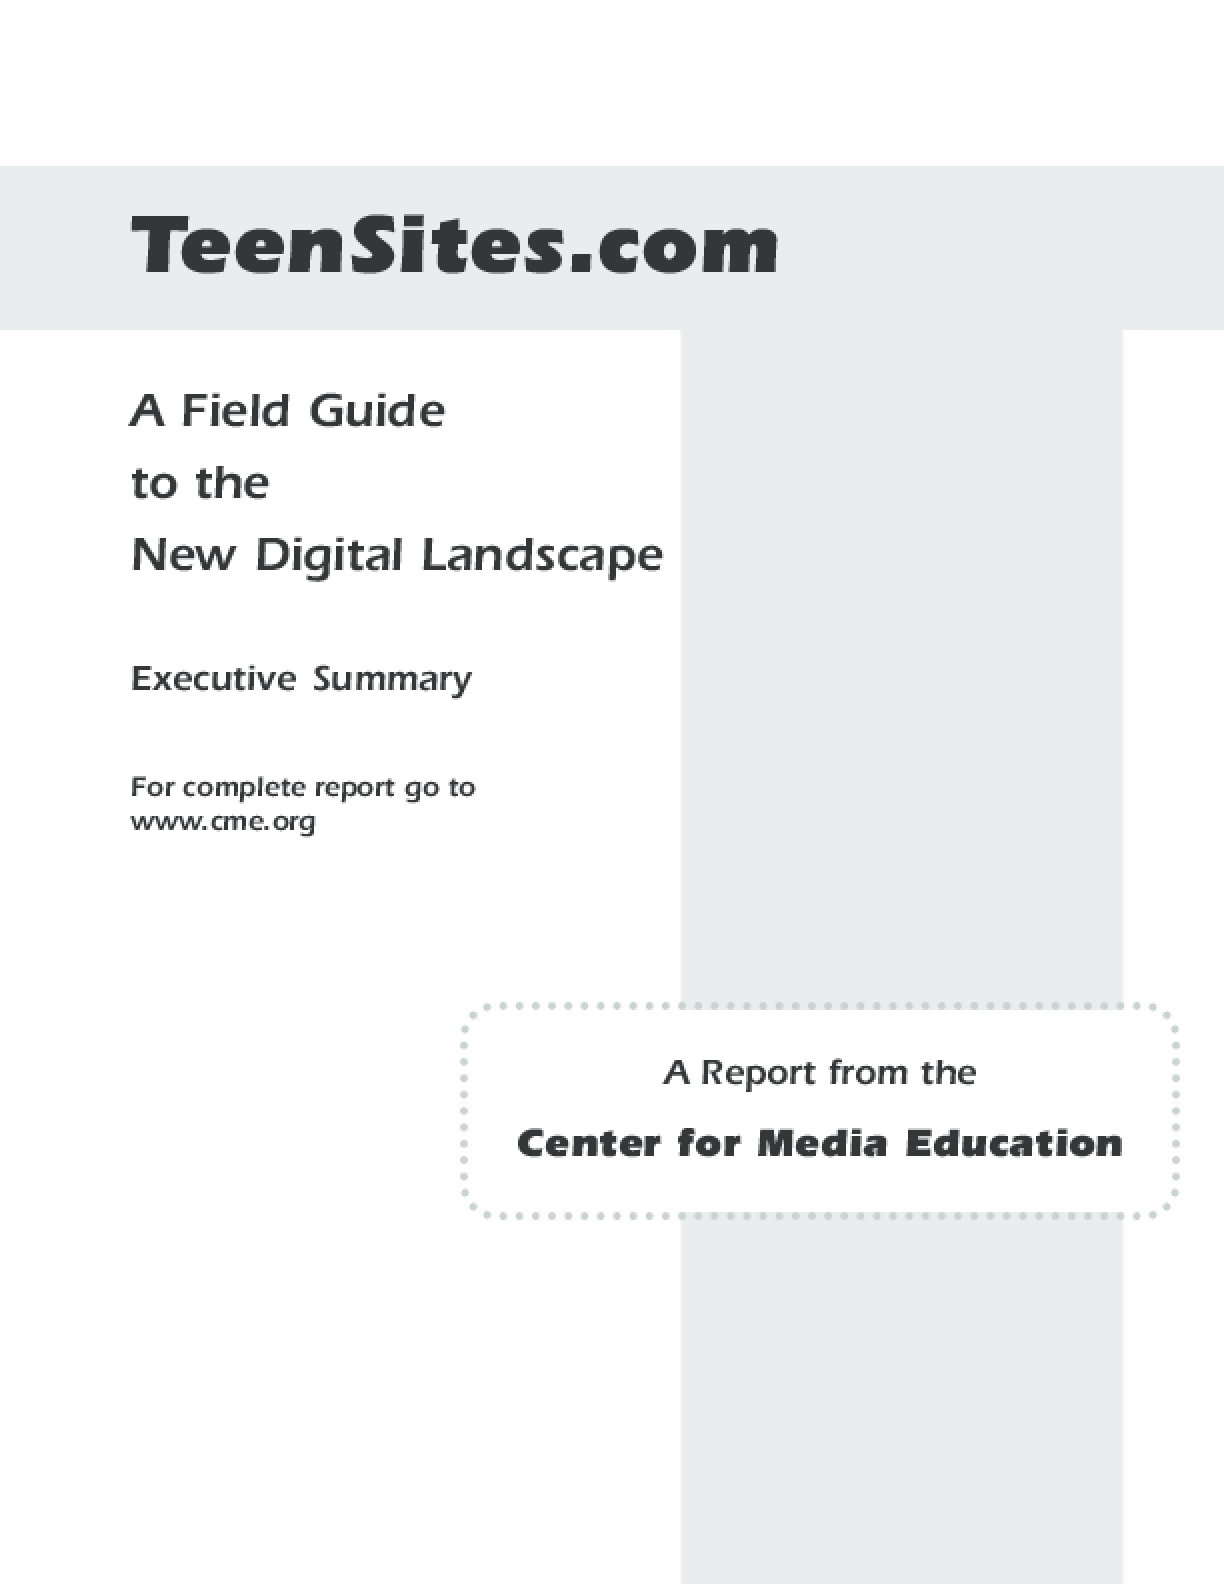 Teensites.com: A Field Guide to the New Digital Landscape